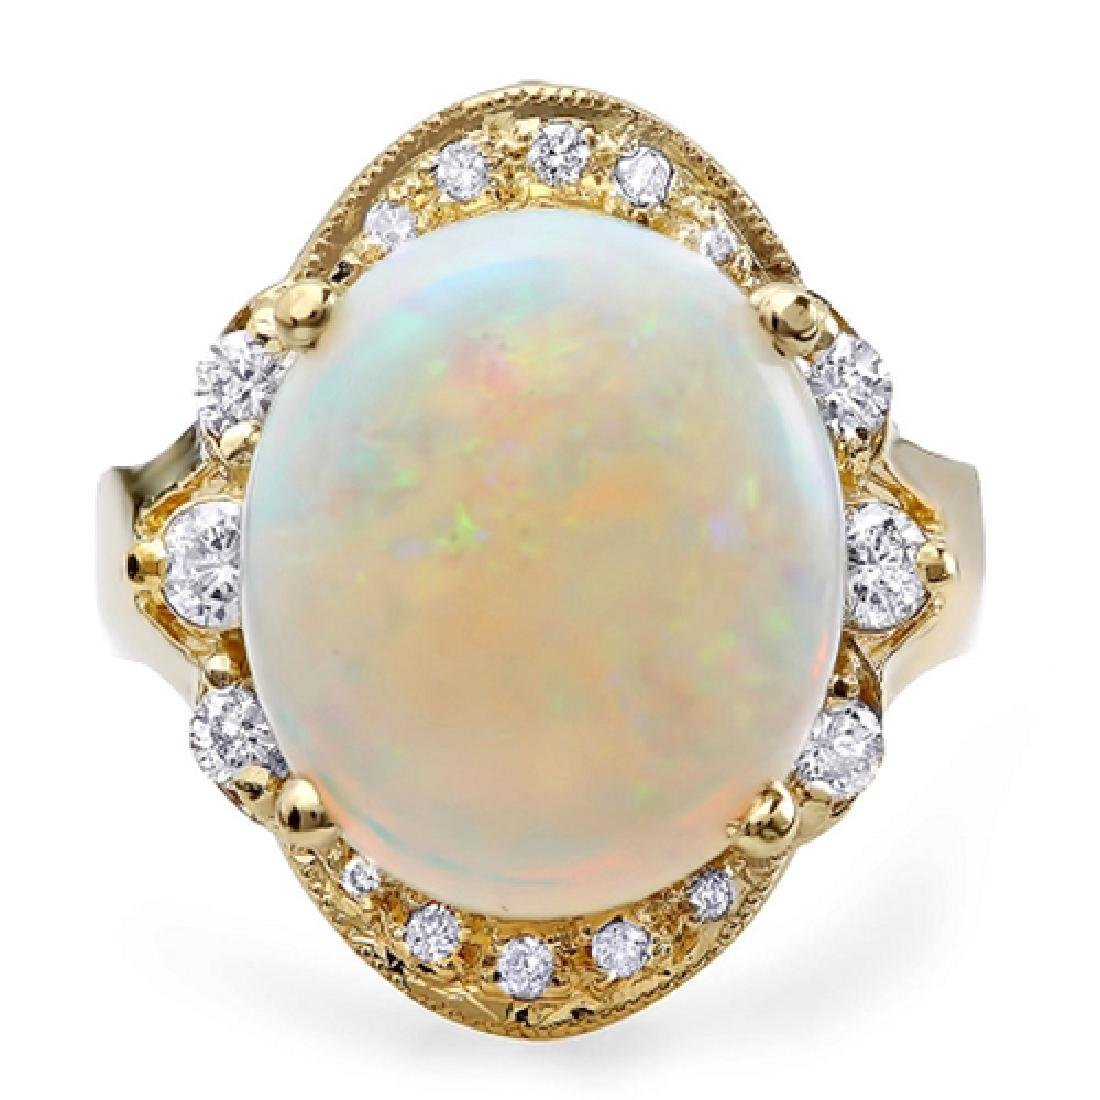 5.43 Carat Natural Opal 18K Solid Yellow Gold Diamond